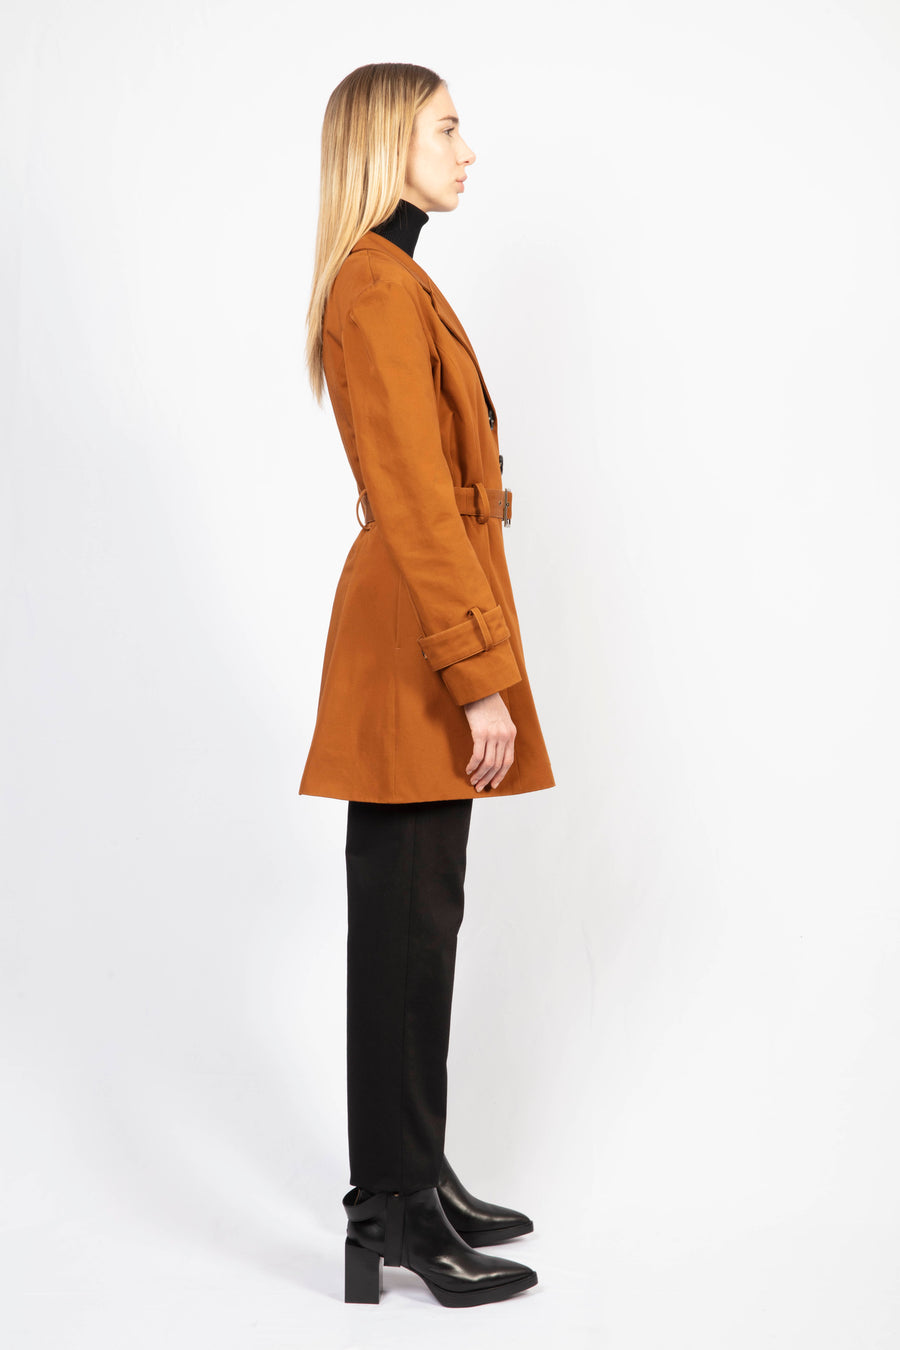 Cotton Trench Coat/ High Waisted Tailored Pants